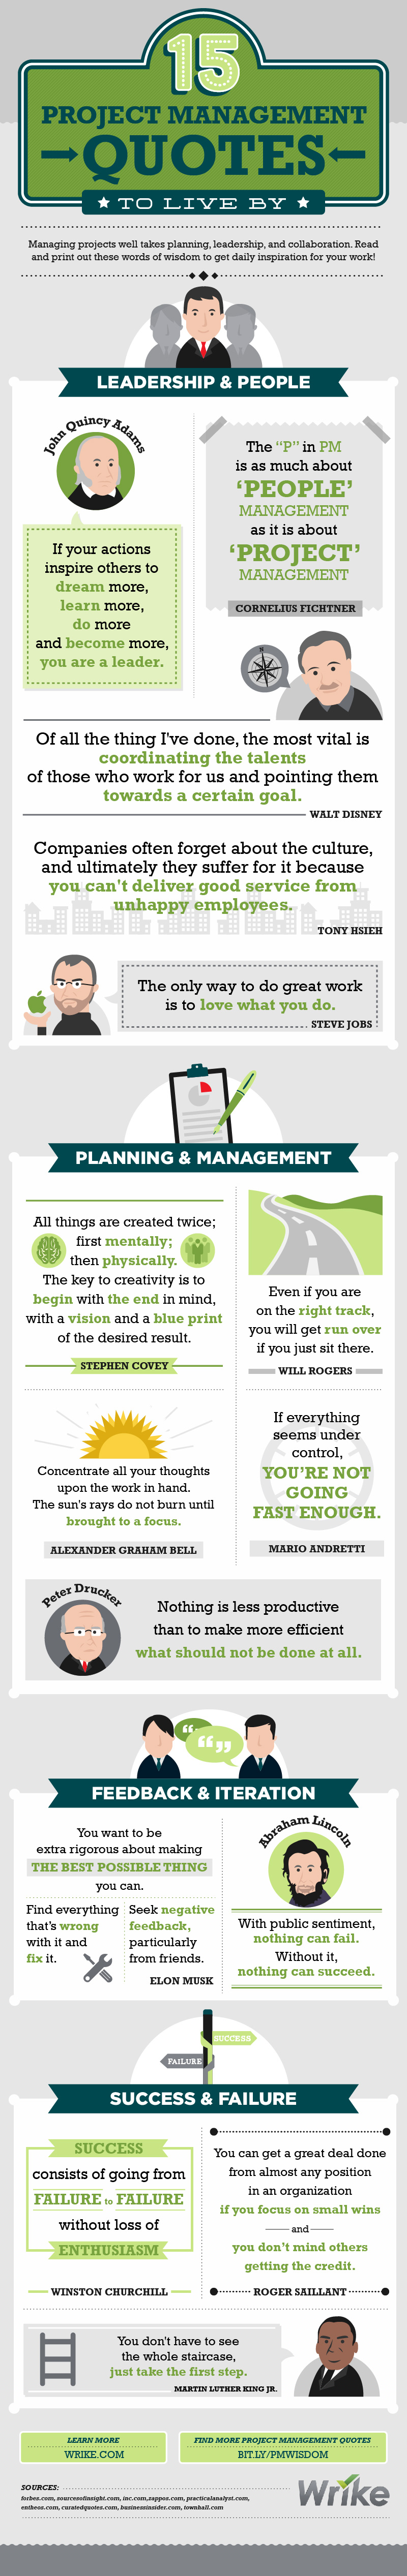 15 Inspirational Project Management Quotes to Live By #infographic